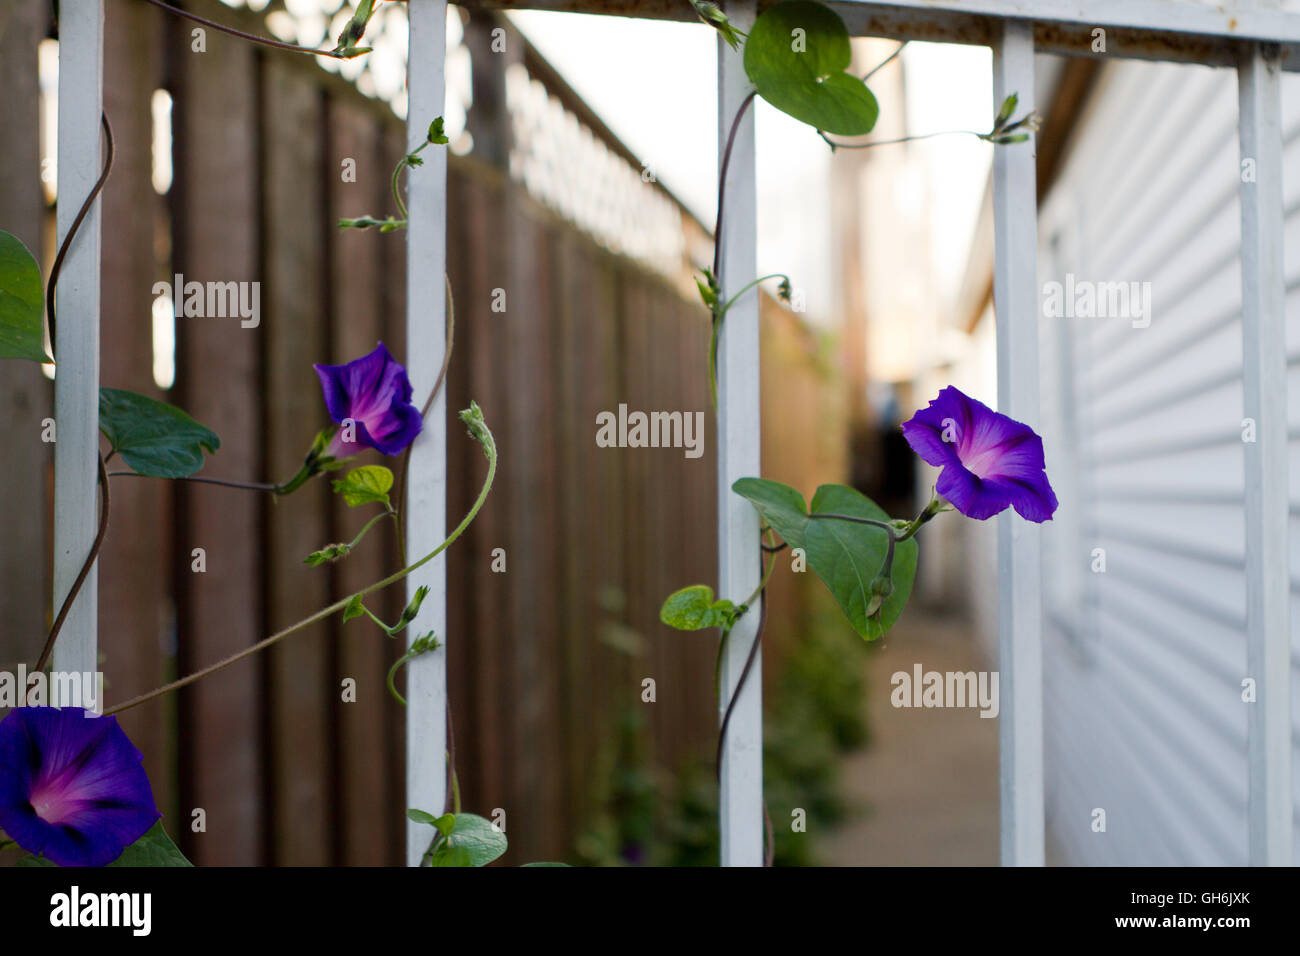 Morning glories on a white iron gate with residential alley behind - Stock Image